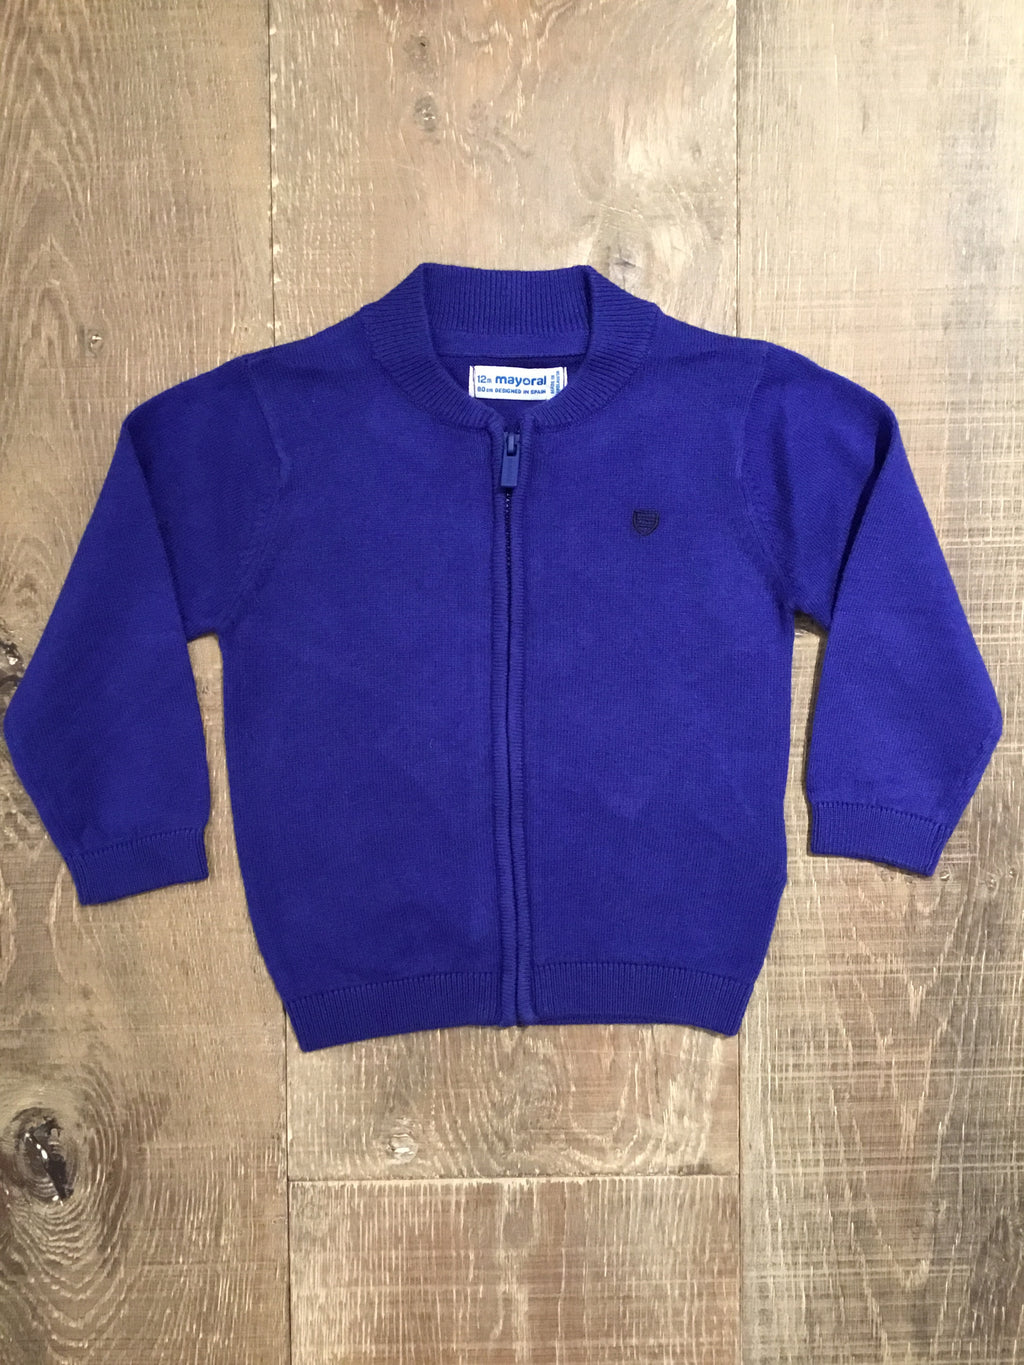 Meteor Blue Knit Pullover